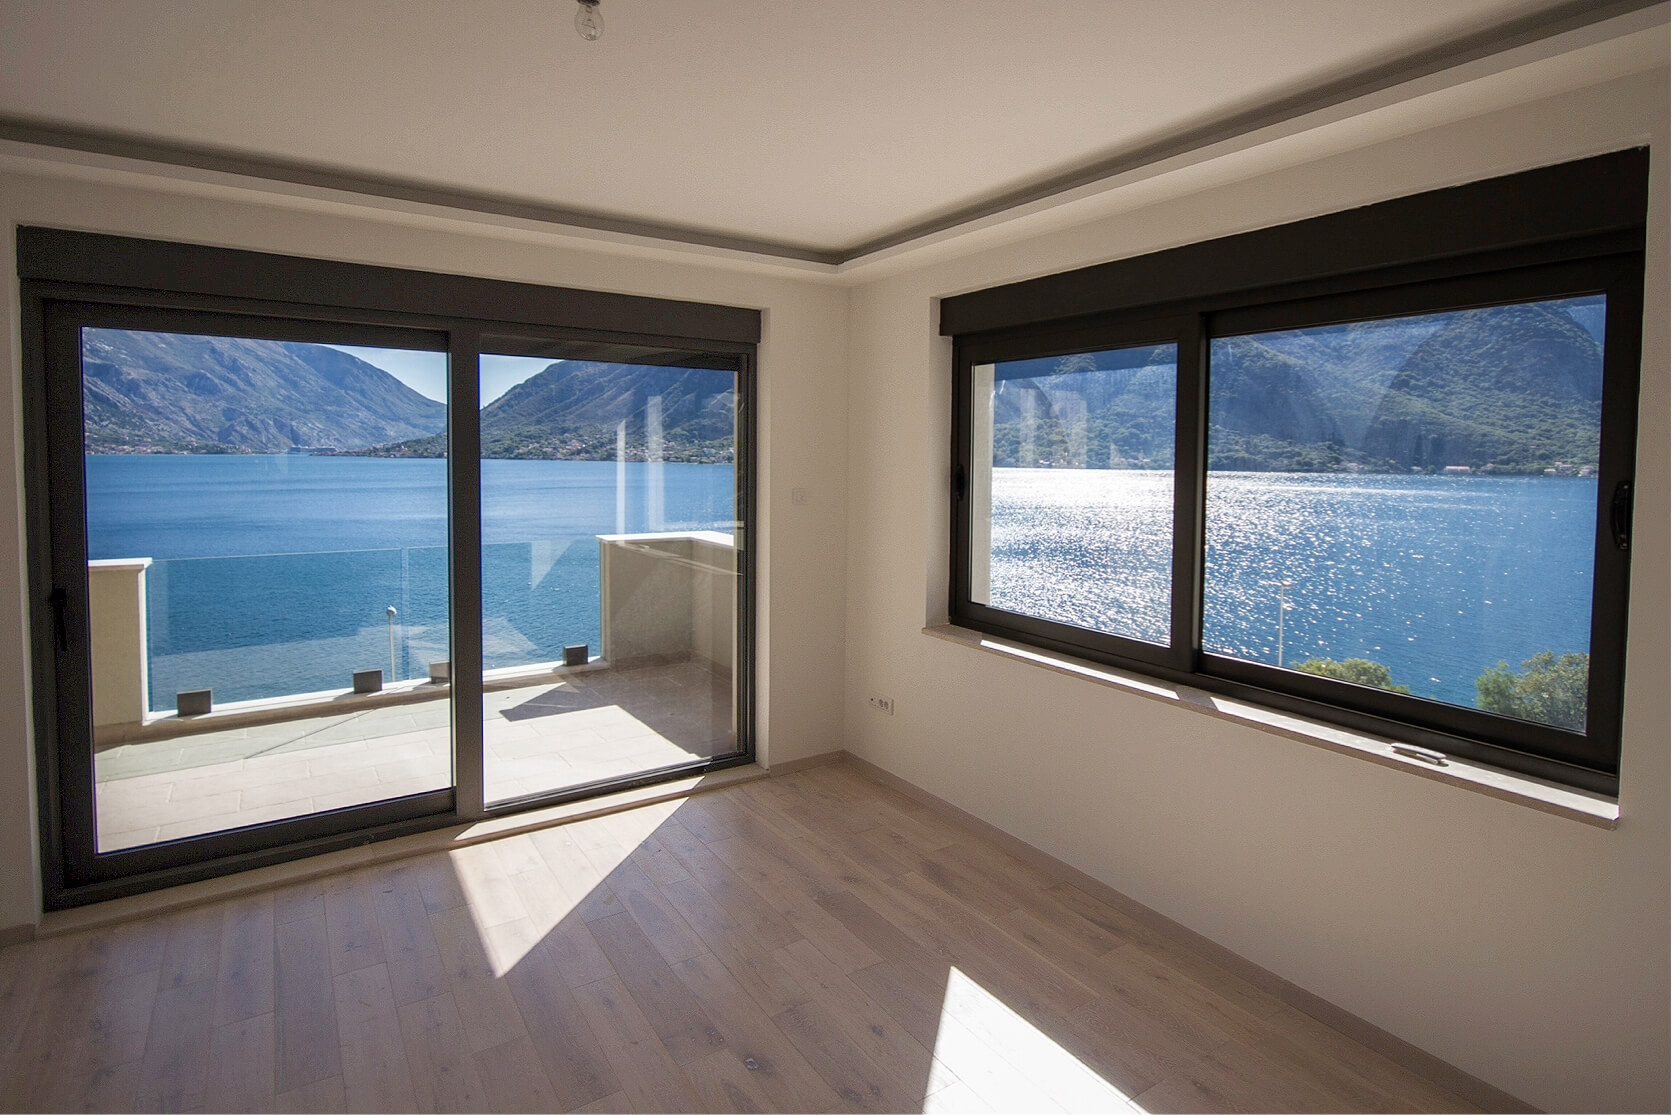 Kotor, Drazin Vrt – luxury two-bedroom apartments, 94m2,  near the sea